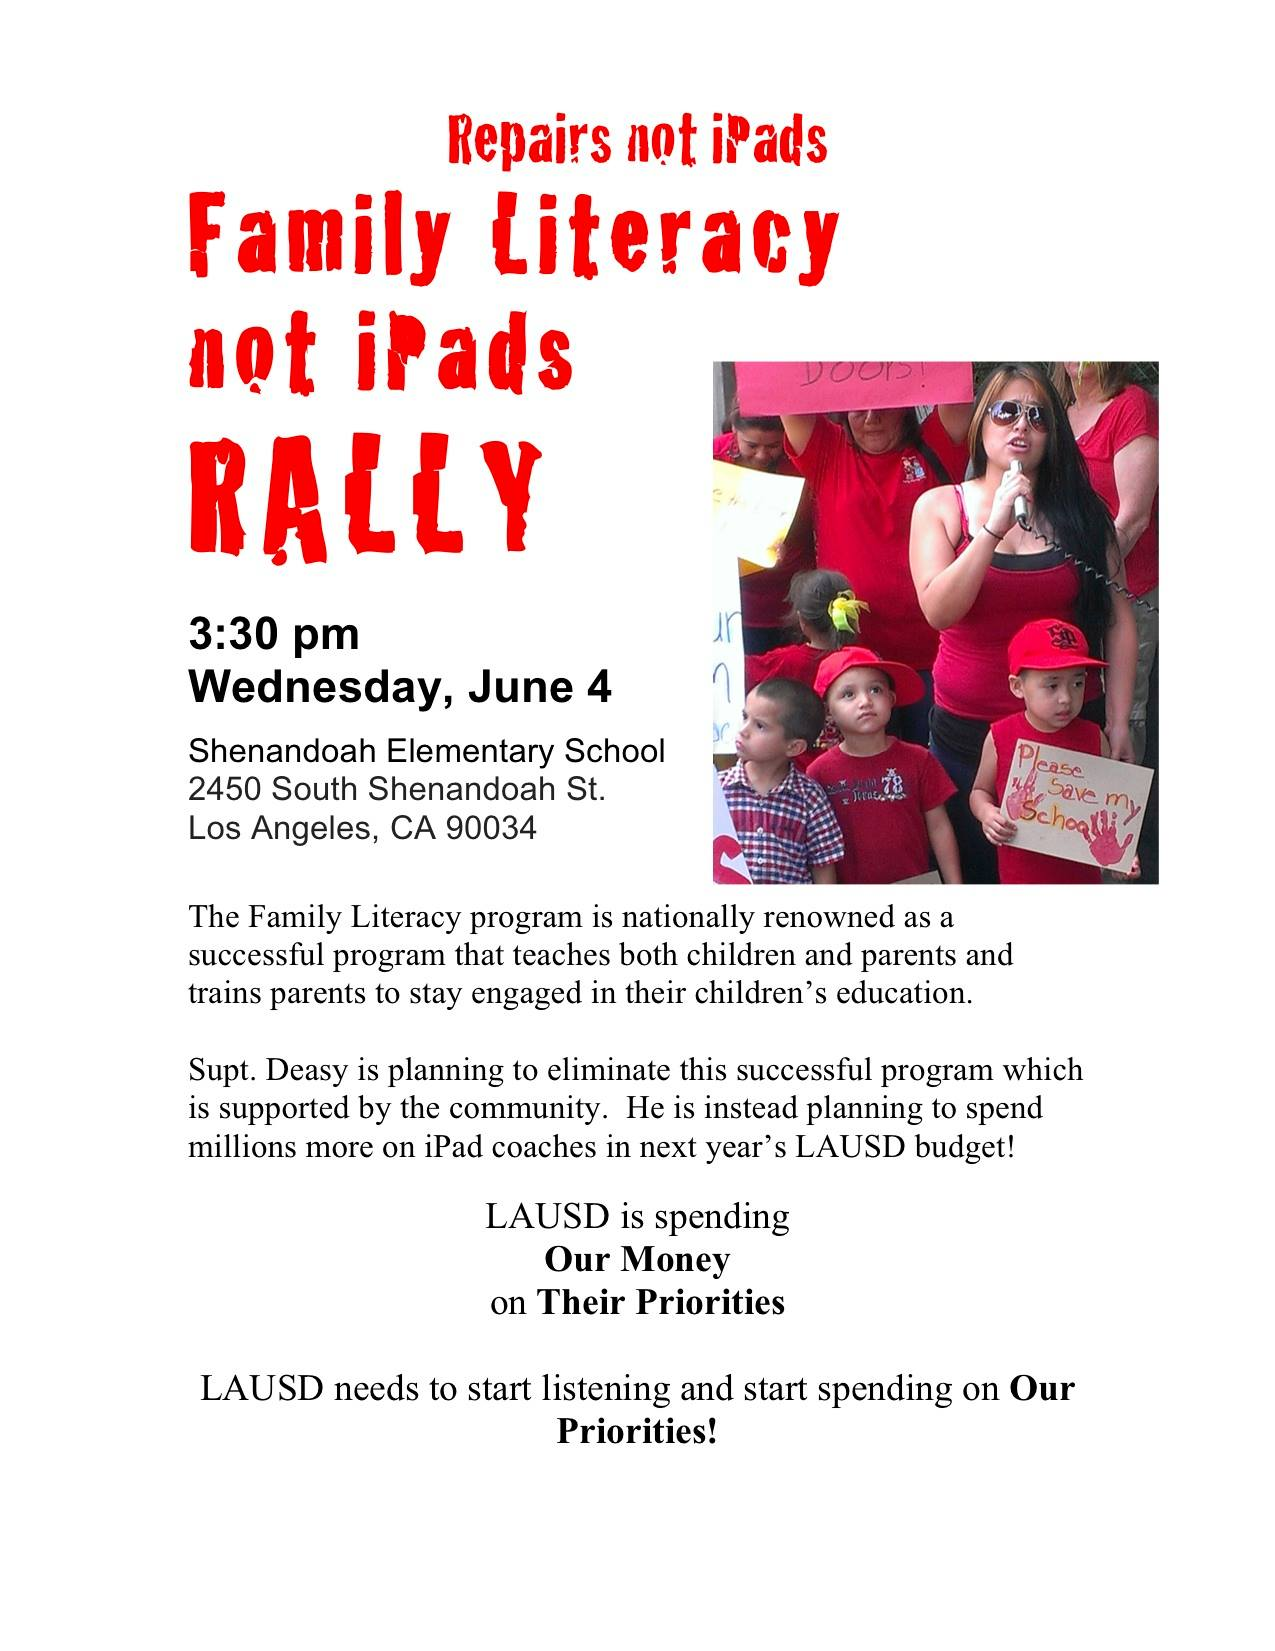 Family_Literacy_not_iPads_rally_June_4.jpg